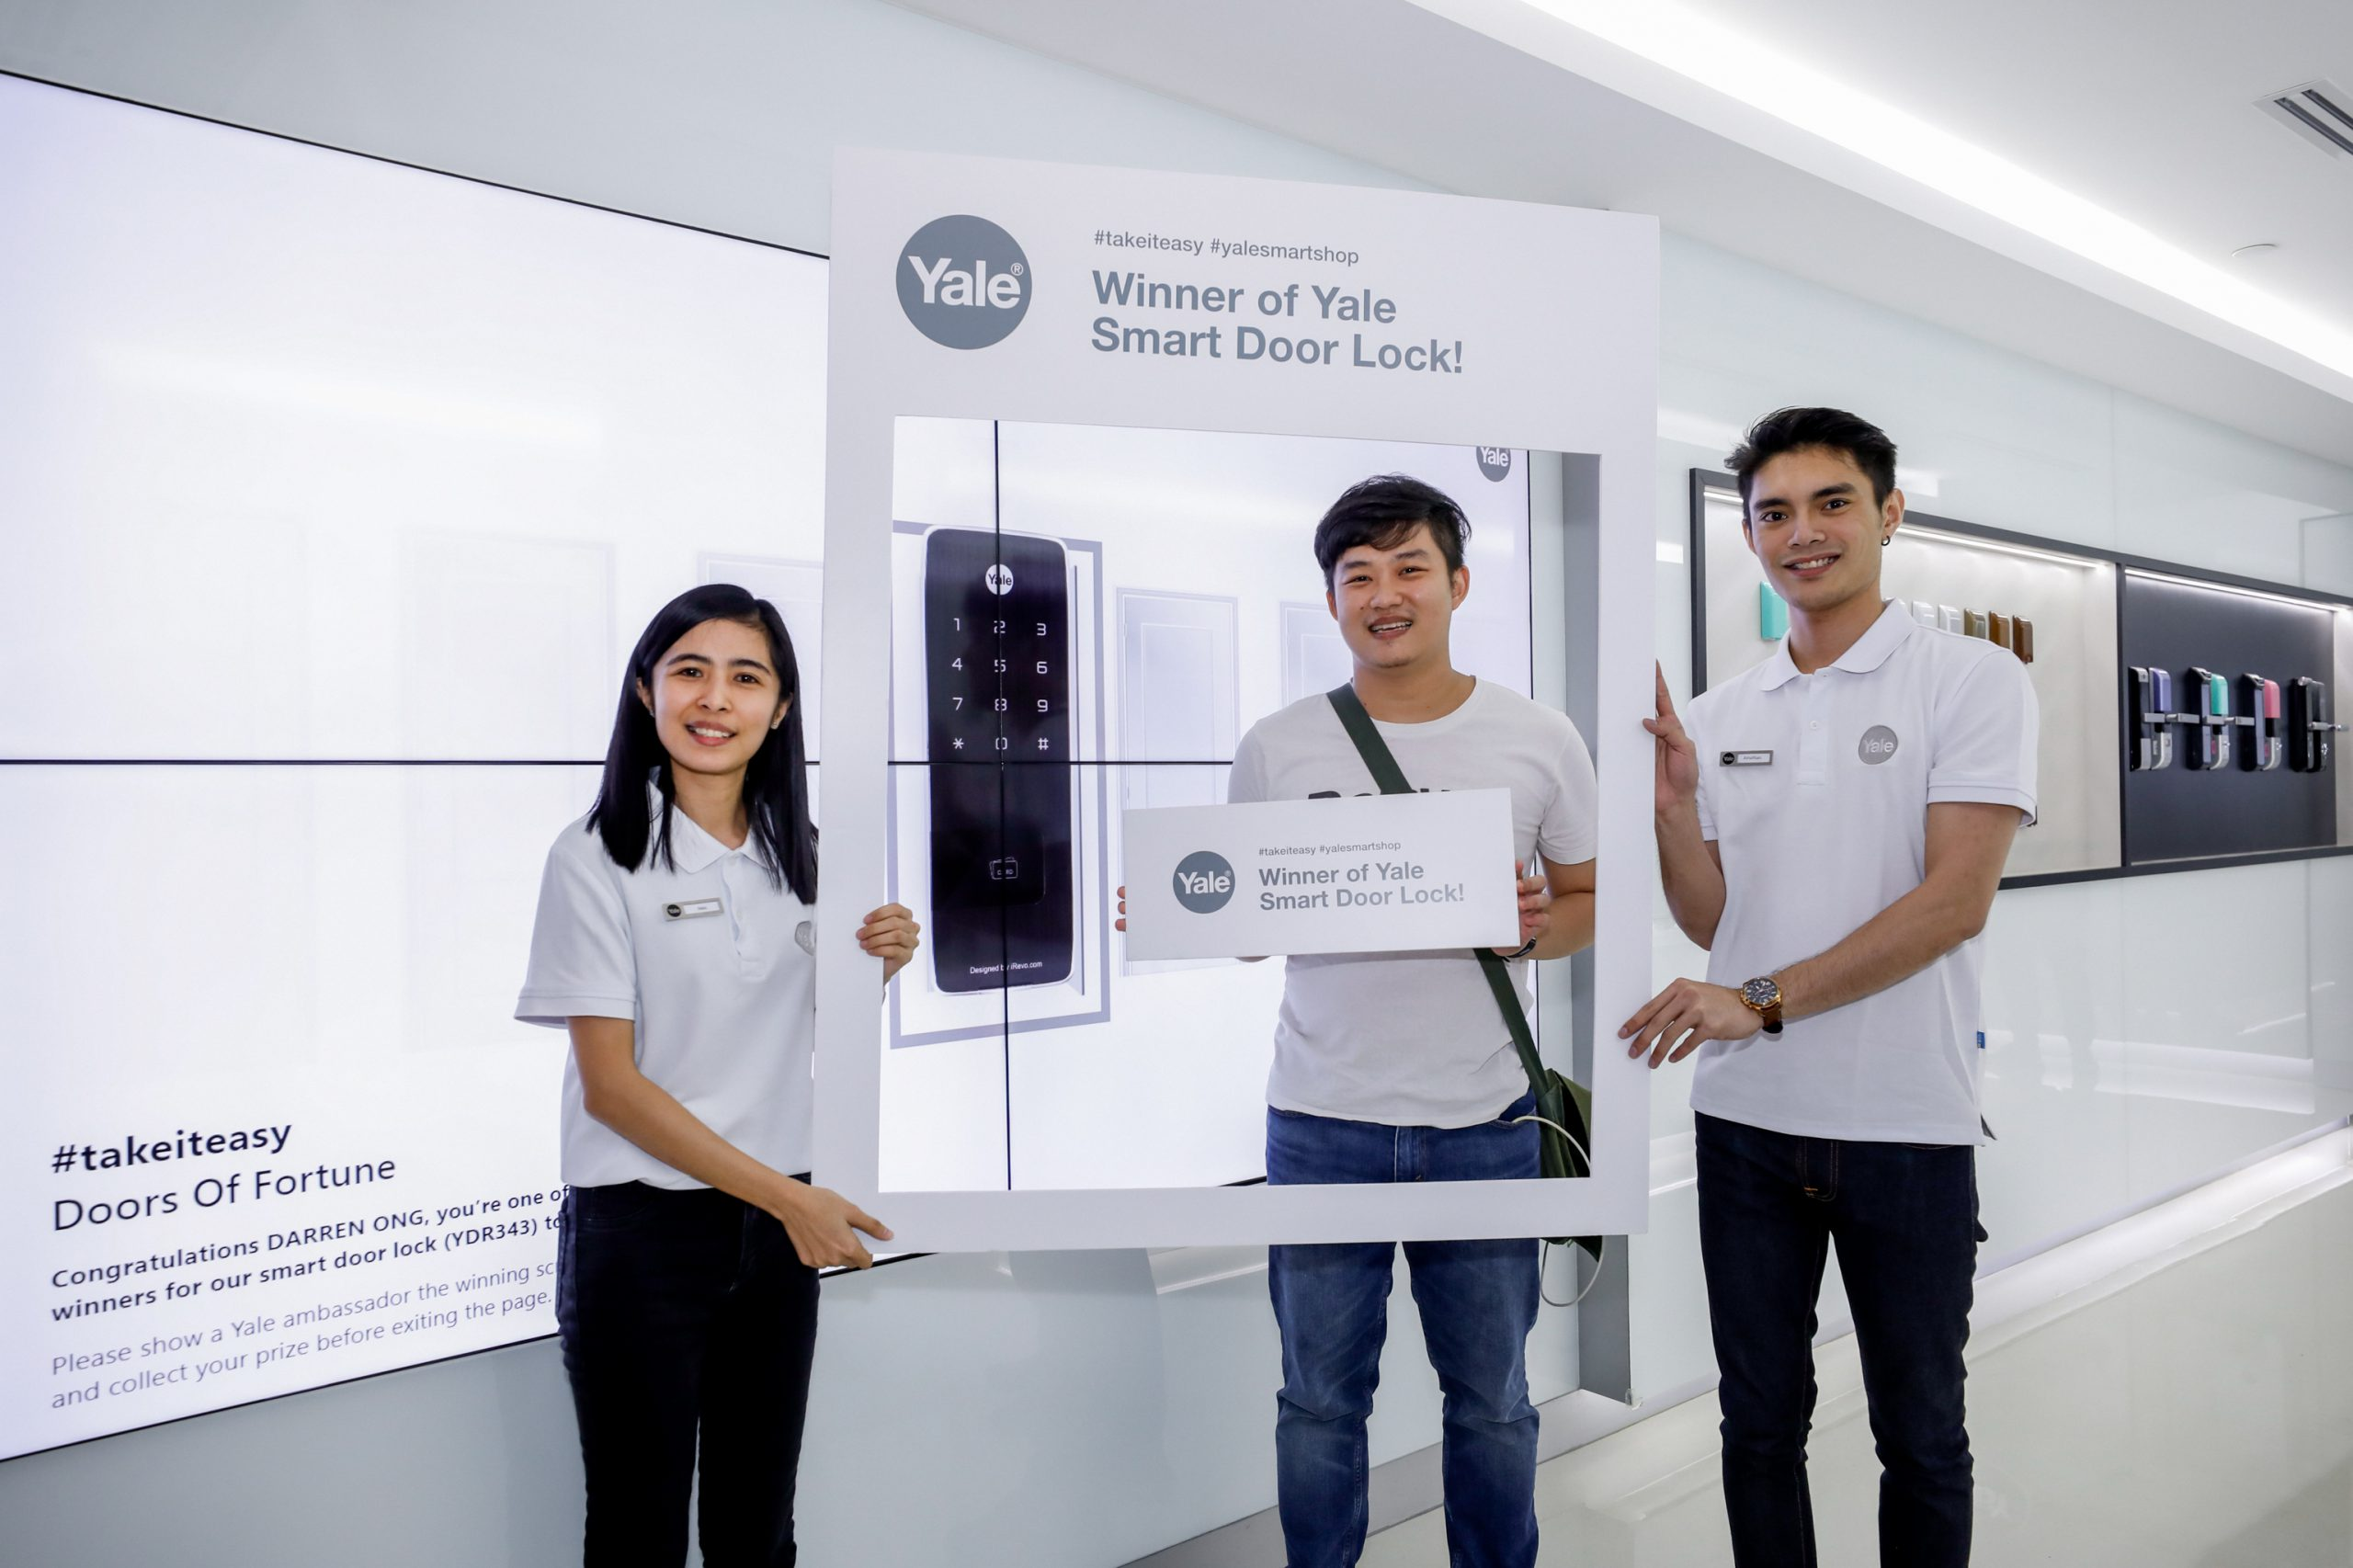 The winner of yale smart door lock posing for a picture in front of the yale interactive spin and win wall, along with two store assistants